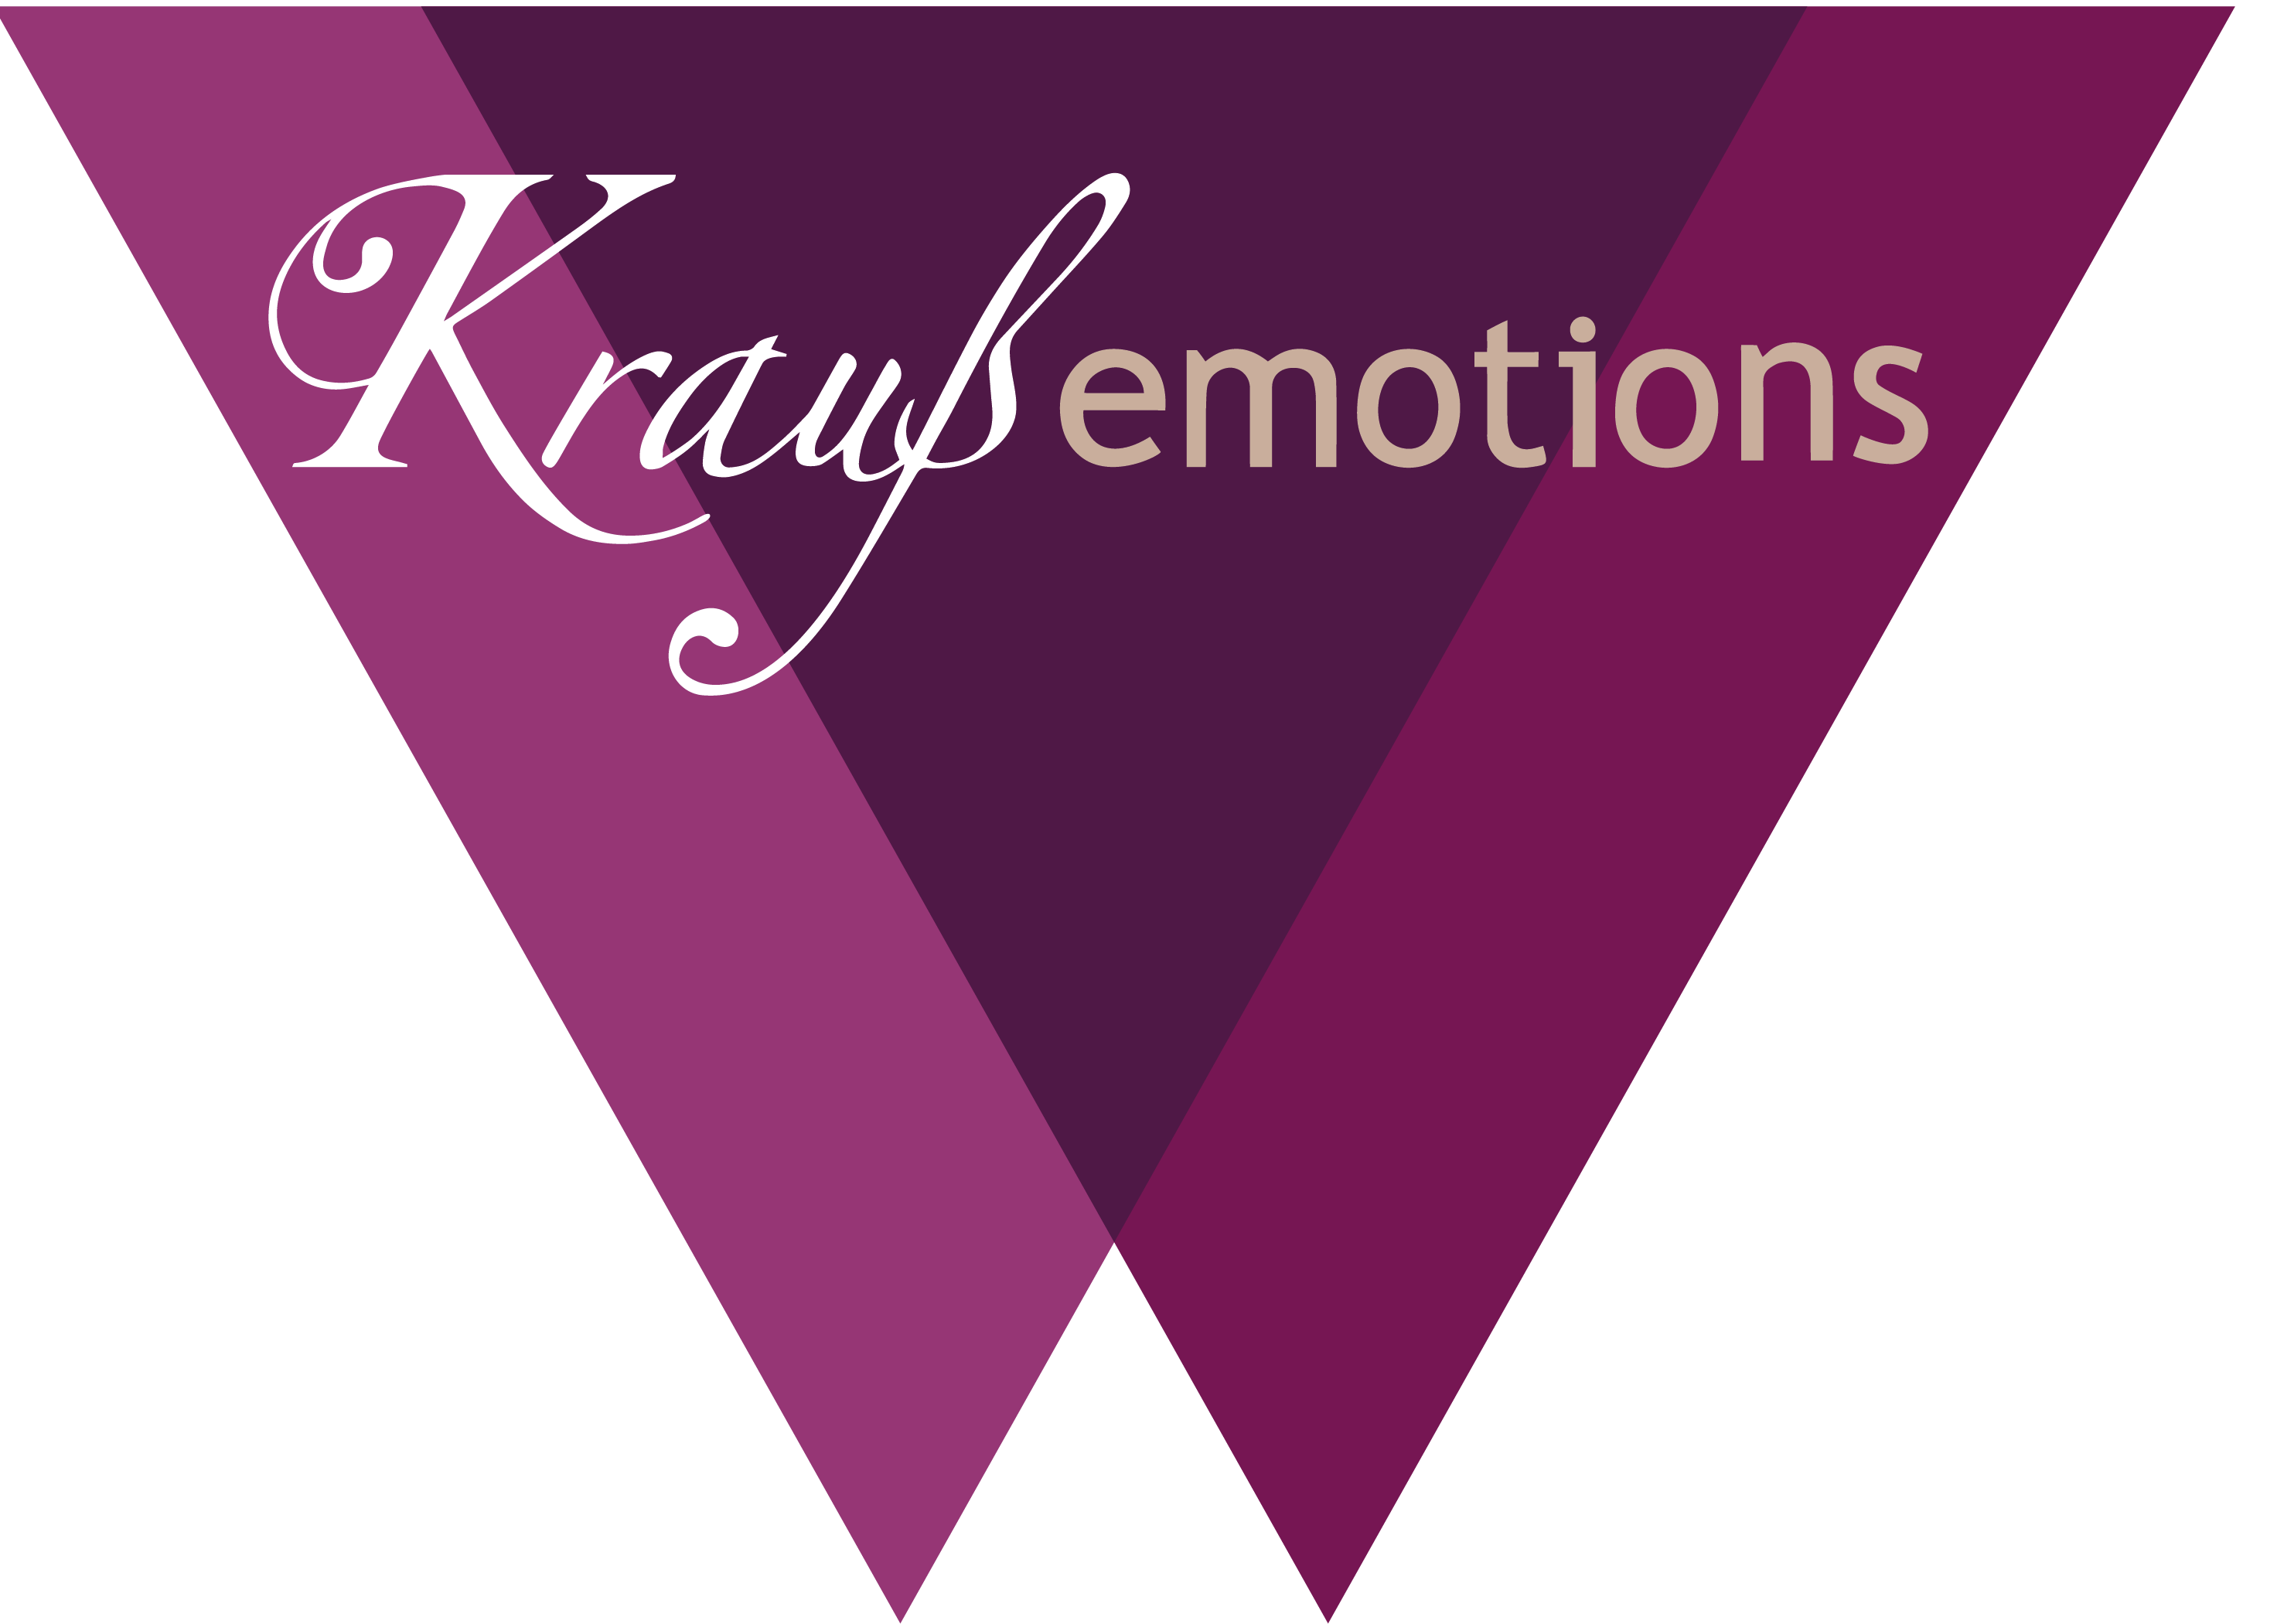 Krauß emotions logo